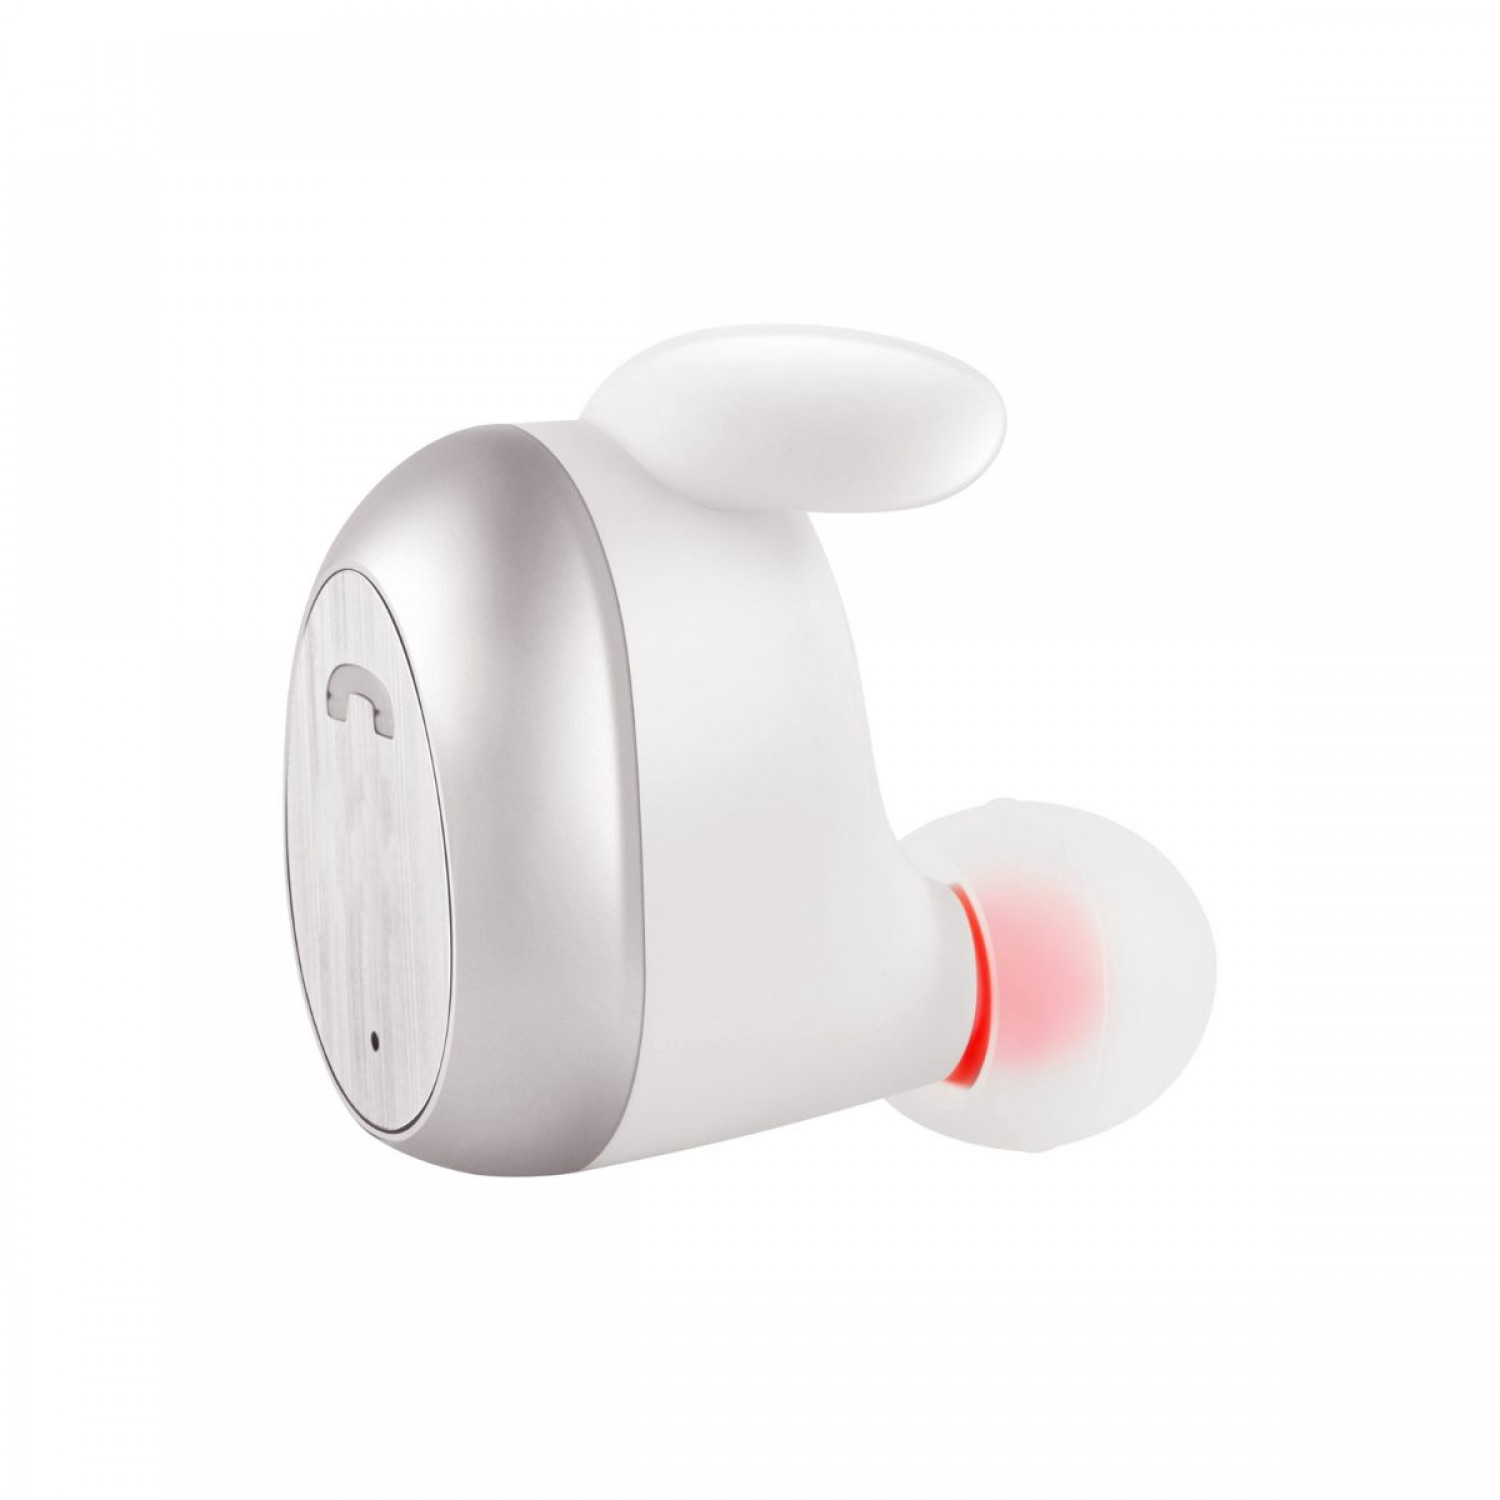 Promate Wireless Earbud, Smallest High-Definition Mono In-Ear Bluetooth v5.0 Earphone with Built-In Microphone and Noise Reduction for Apple iPhone, Samsung, OnePlus, iPad, iPod, Mod White